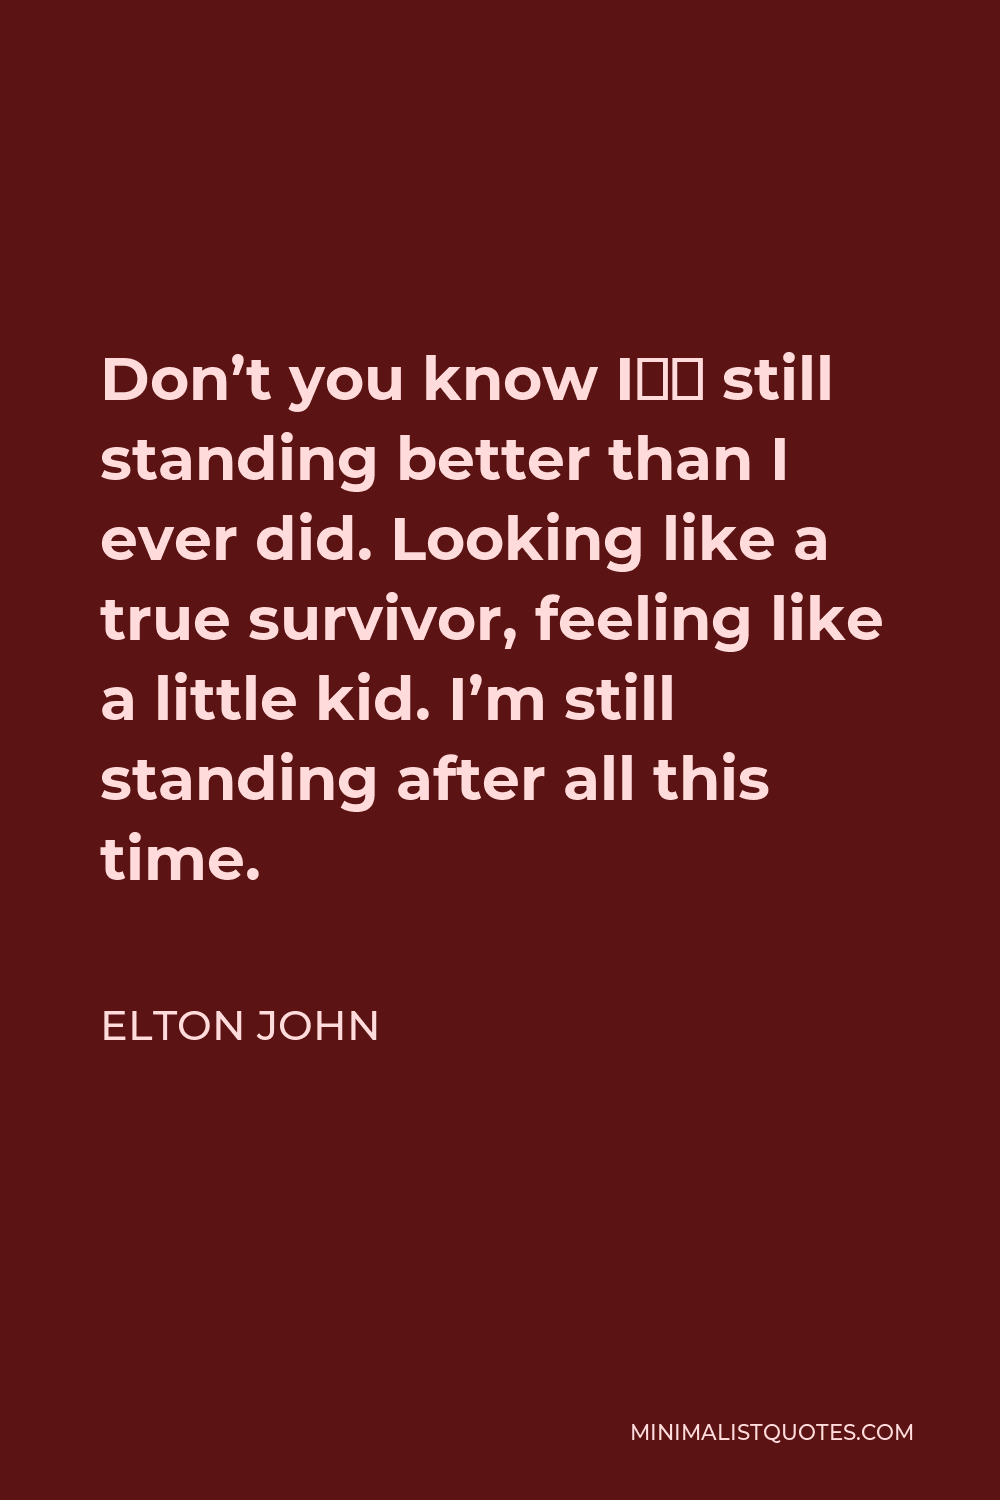 """Elton John Quote - Don't you know I""""m still standing better than I ever did. Looking like a true survivor, feeling like a little kid. I'm still standing after all this time."""